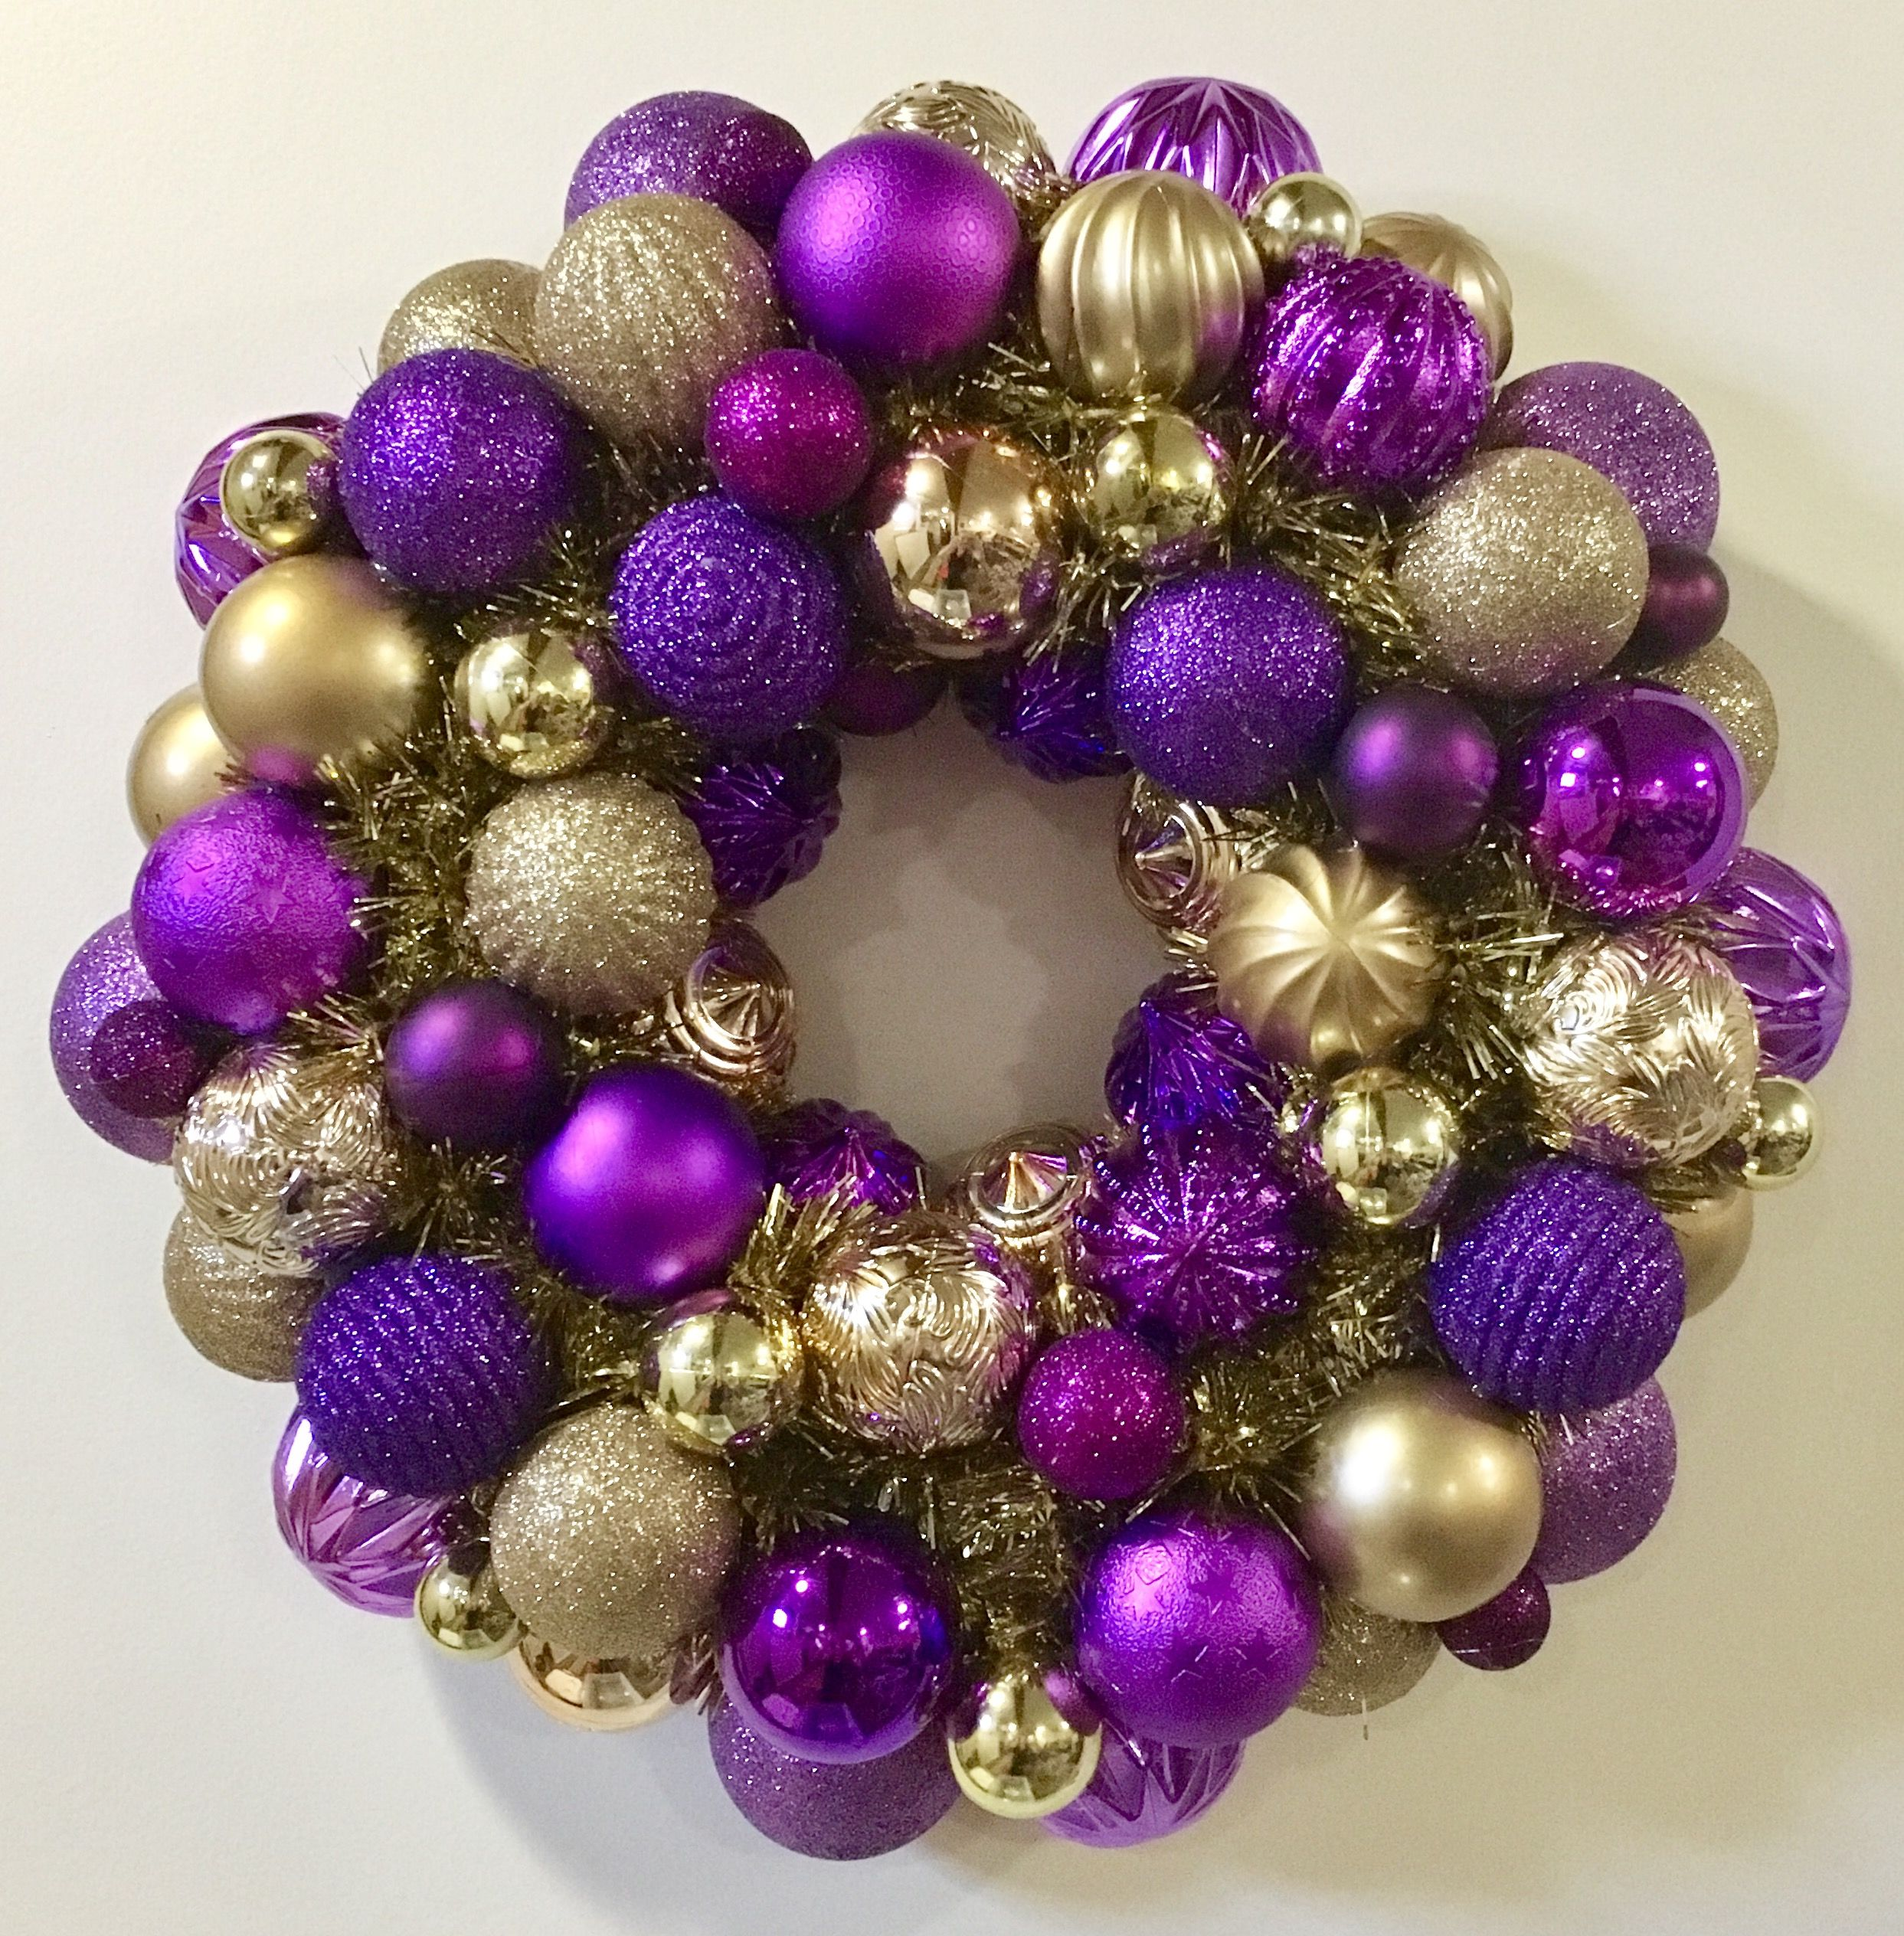 Purple Gold Holiday Ornament Wreath Champion High School Wreath Ornament Wreath Gold Ornament Wreath Wreaths